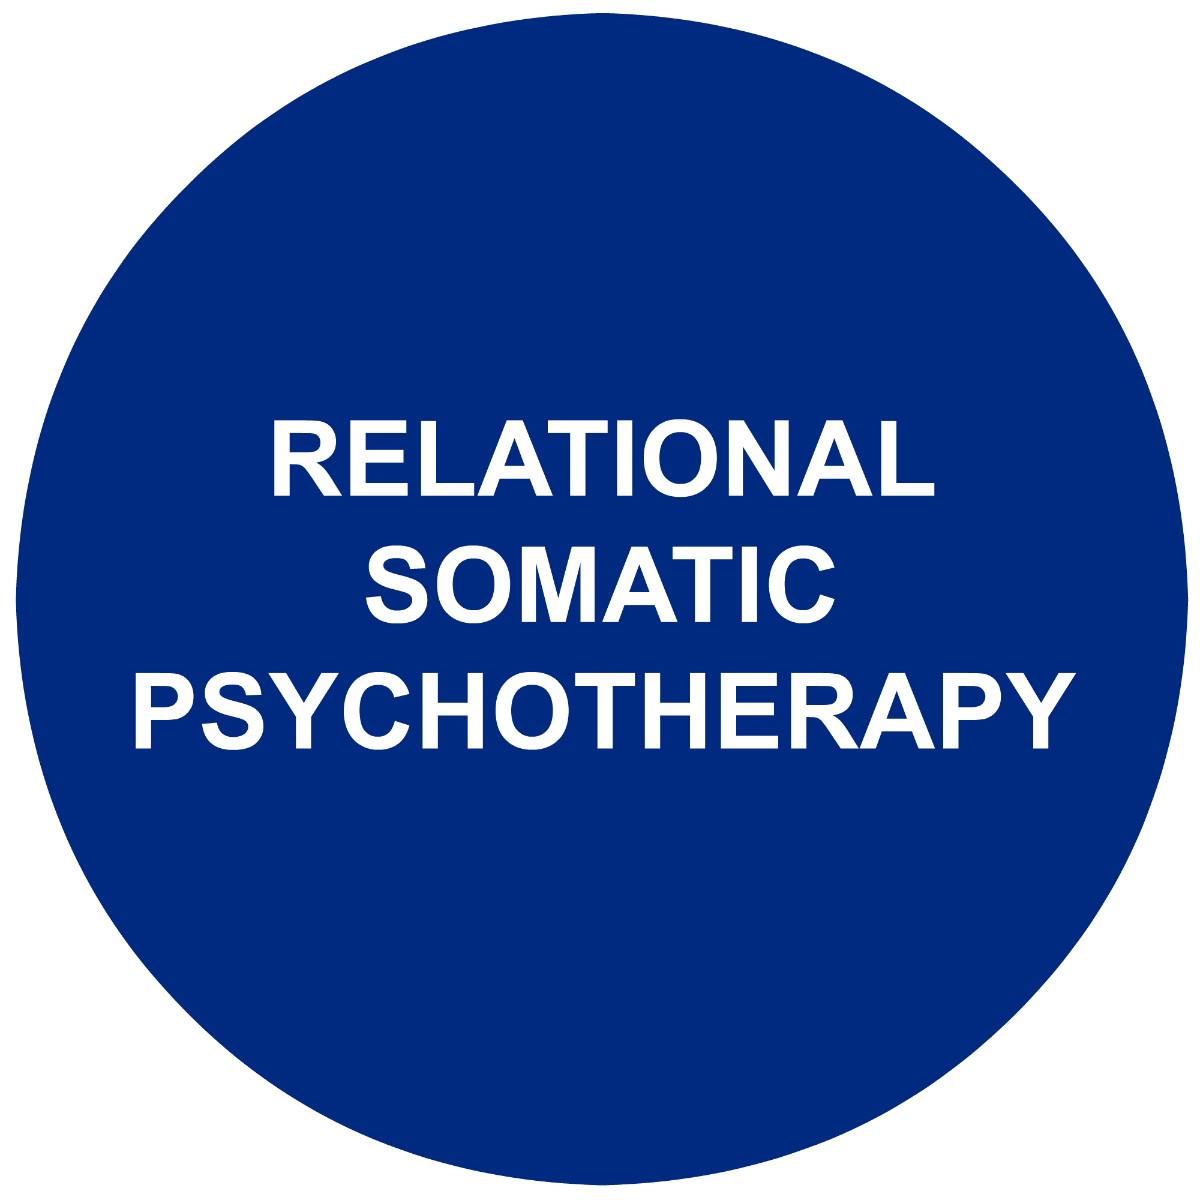 Relational Somatic Psychotherapy Toronto button